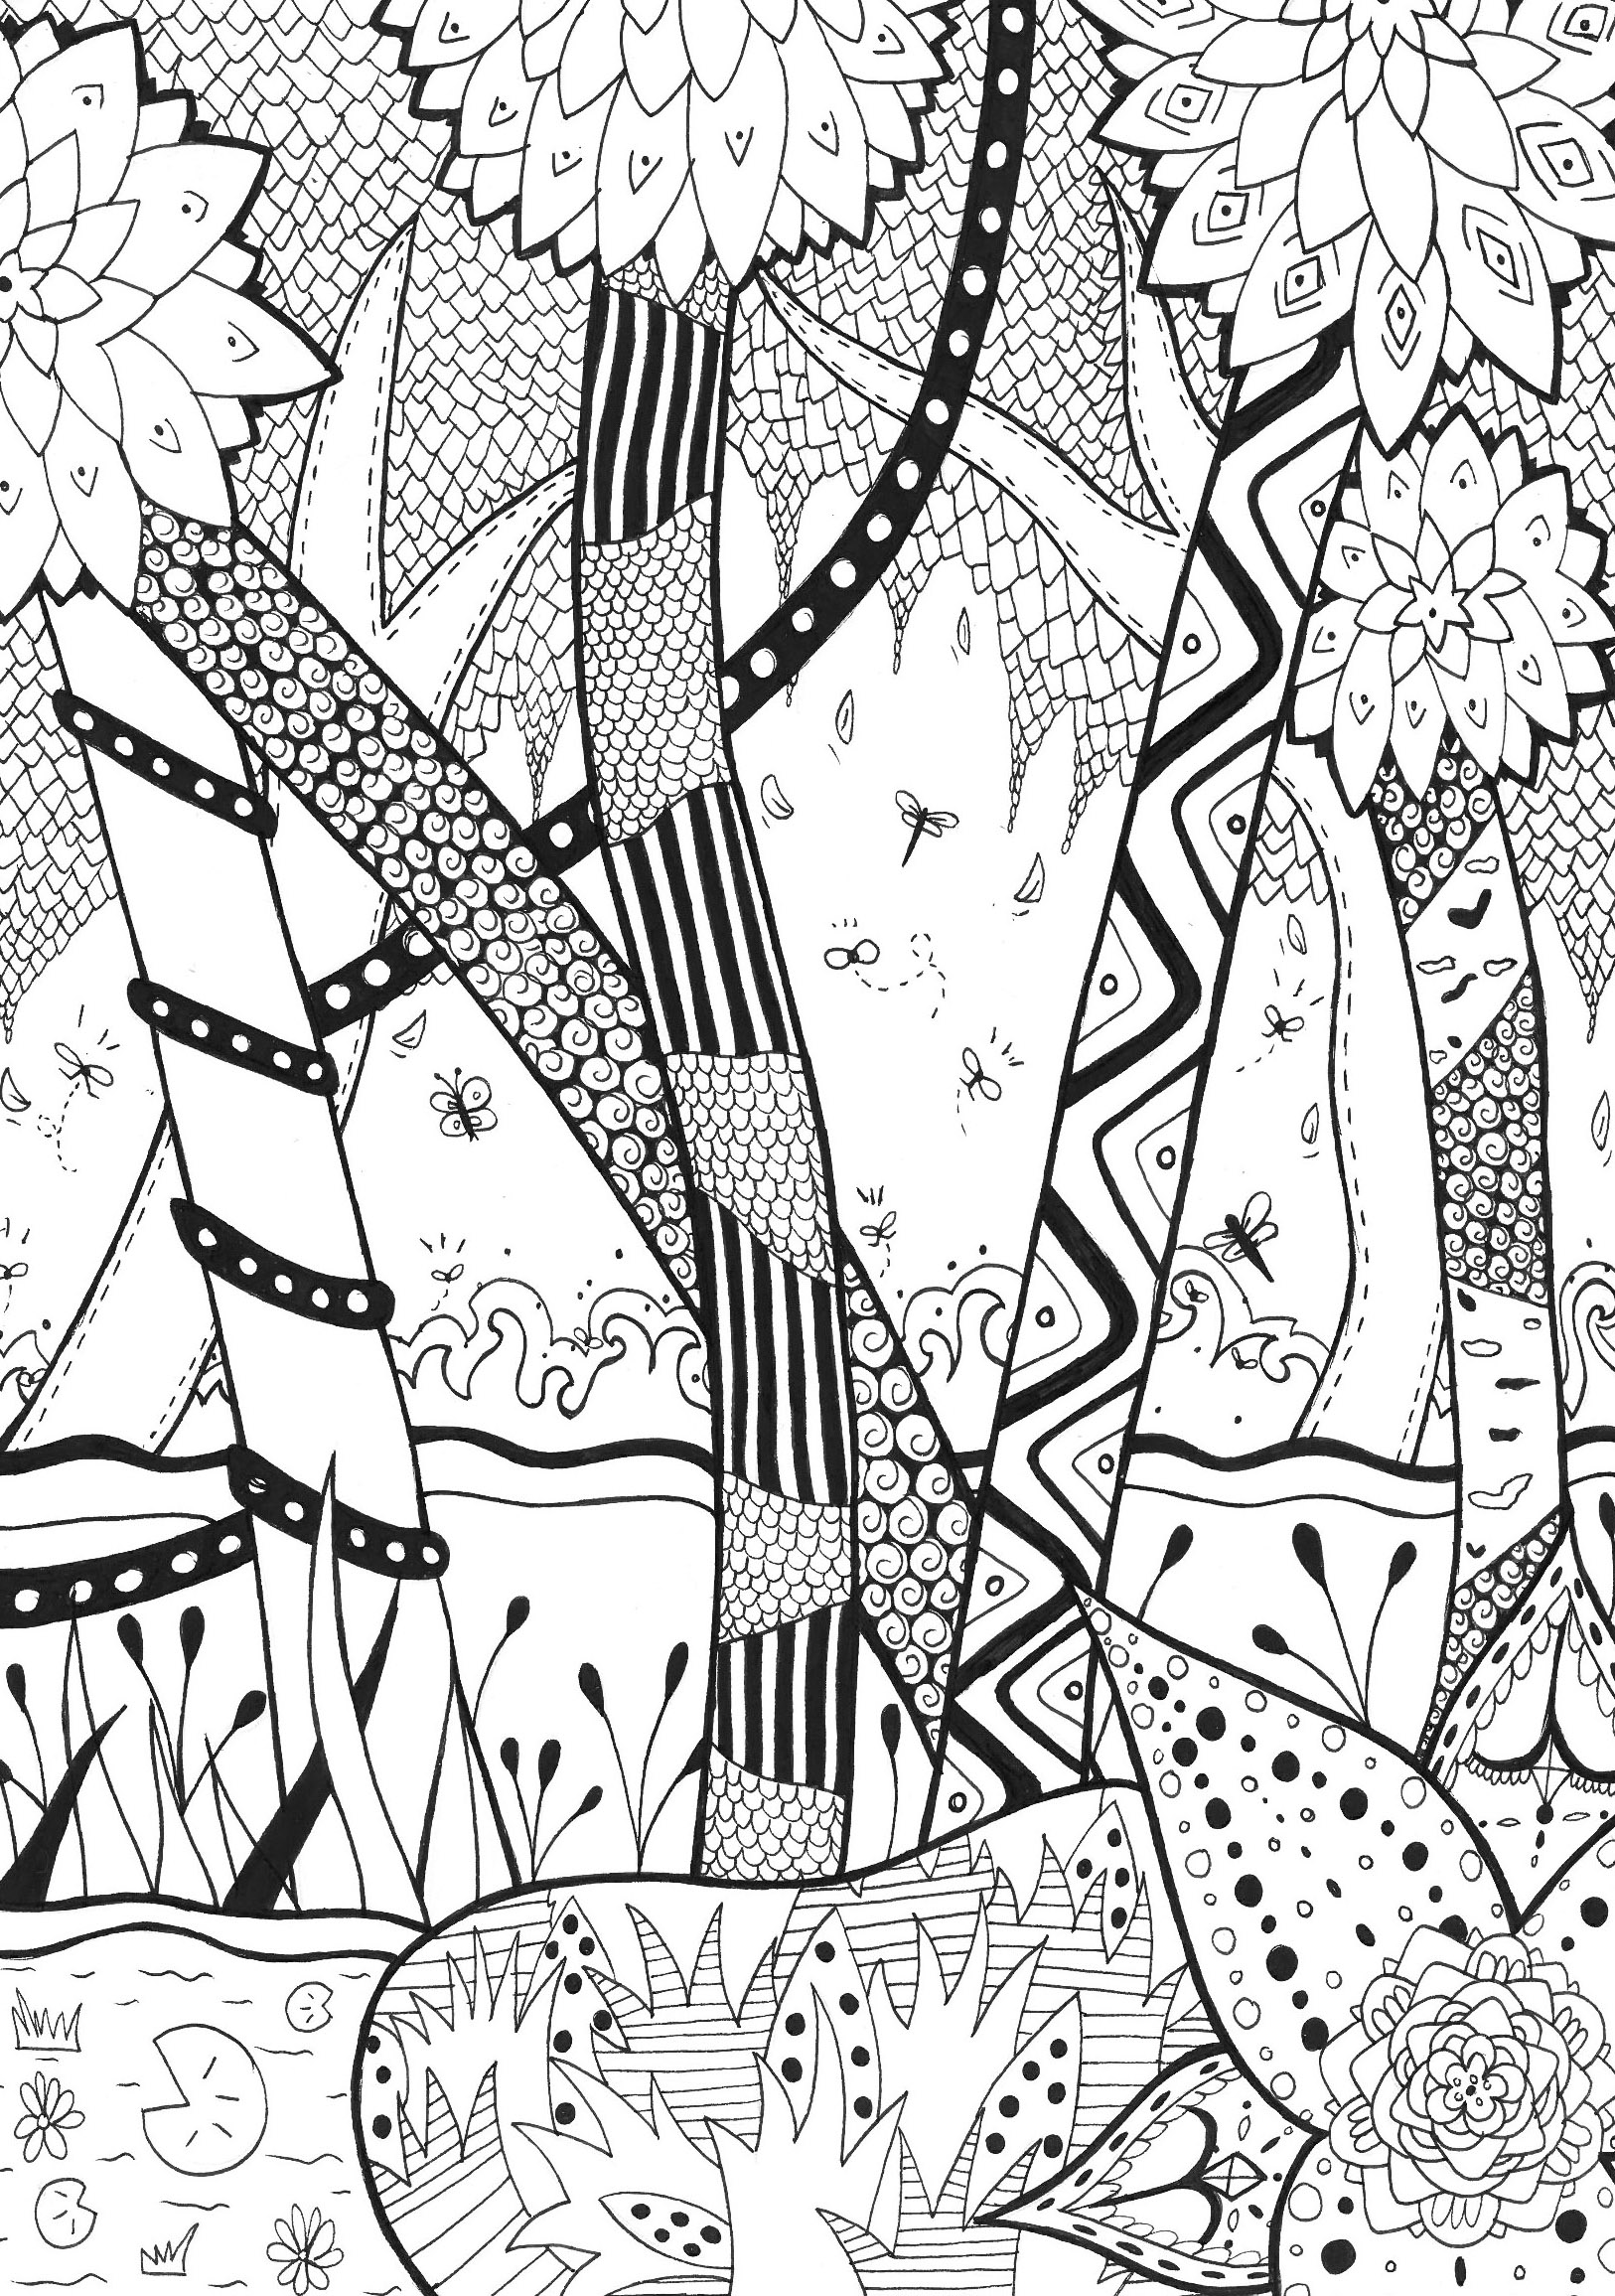 coloring pages zentangle zentangle to print zentangle kids coloring pages coloring zentangle pages